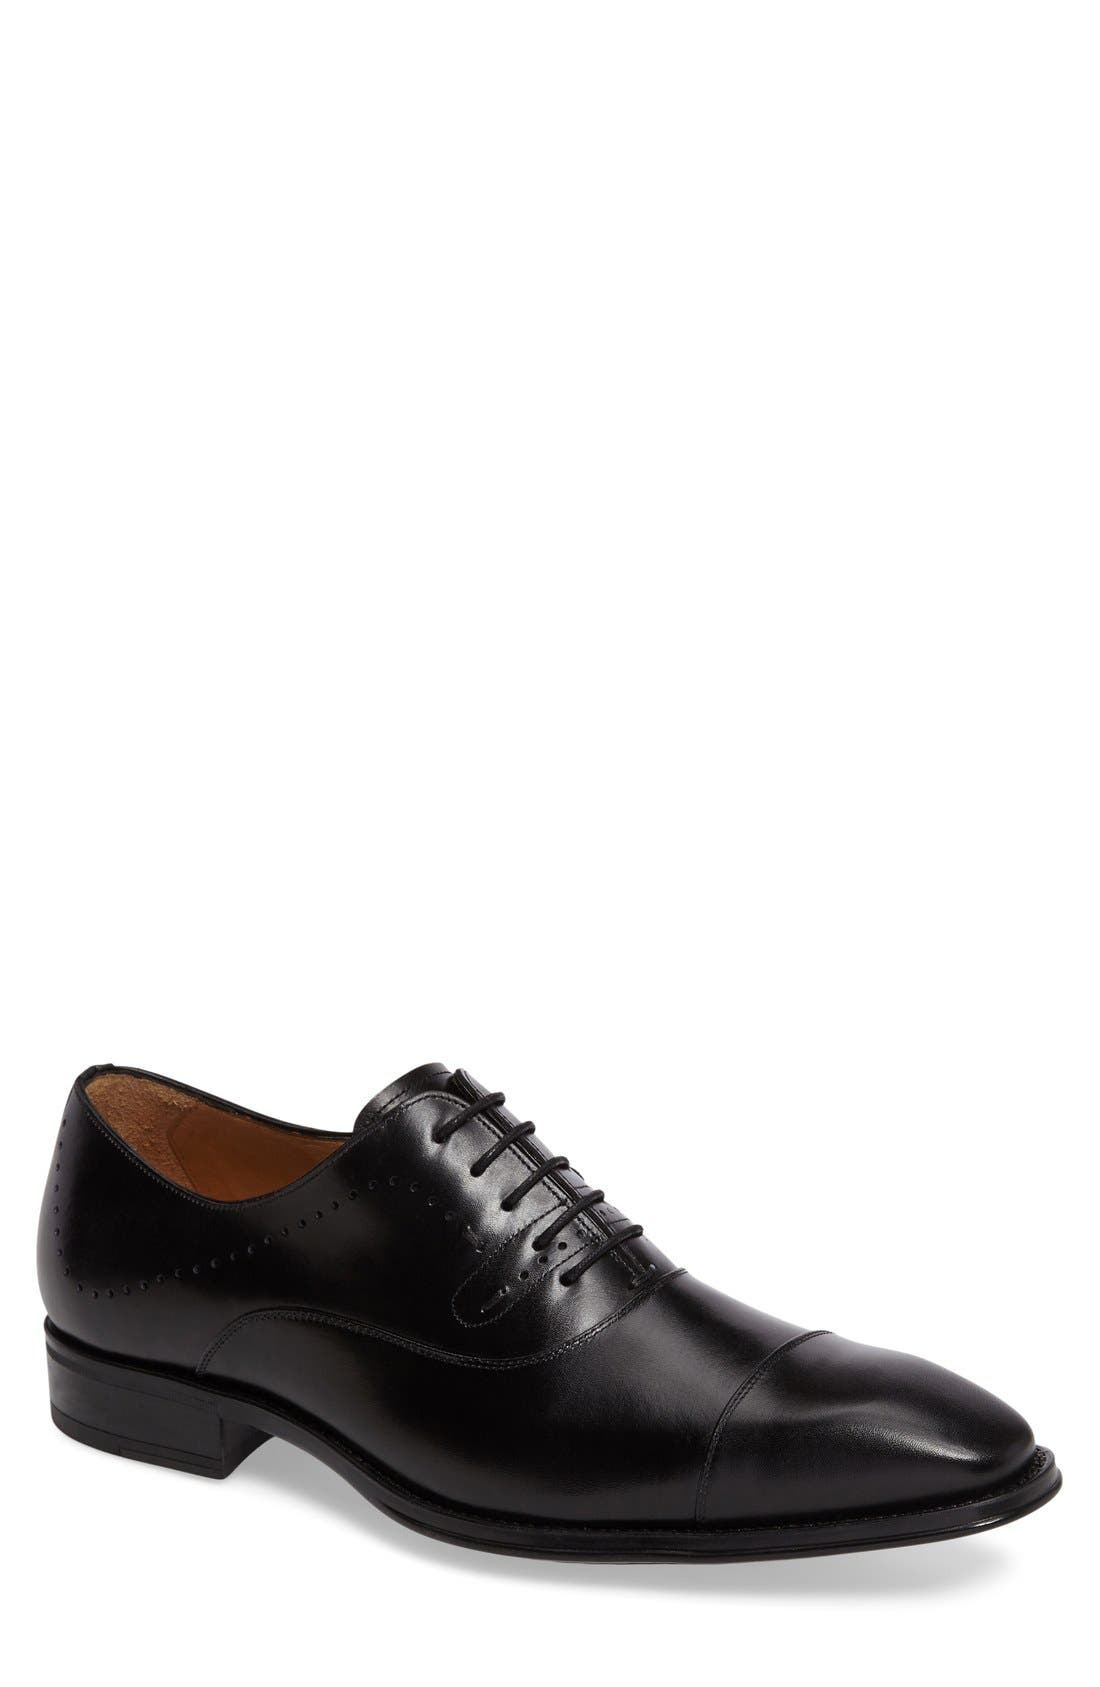 'Fermo' Cap Toe Perforated Oxford,                             Main thumbnail 1, color,                             001